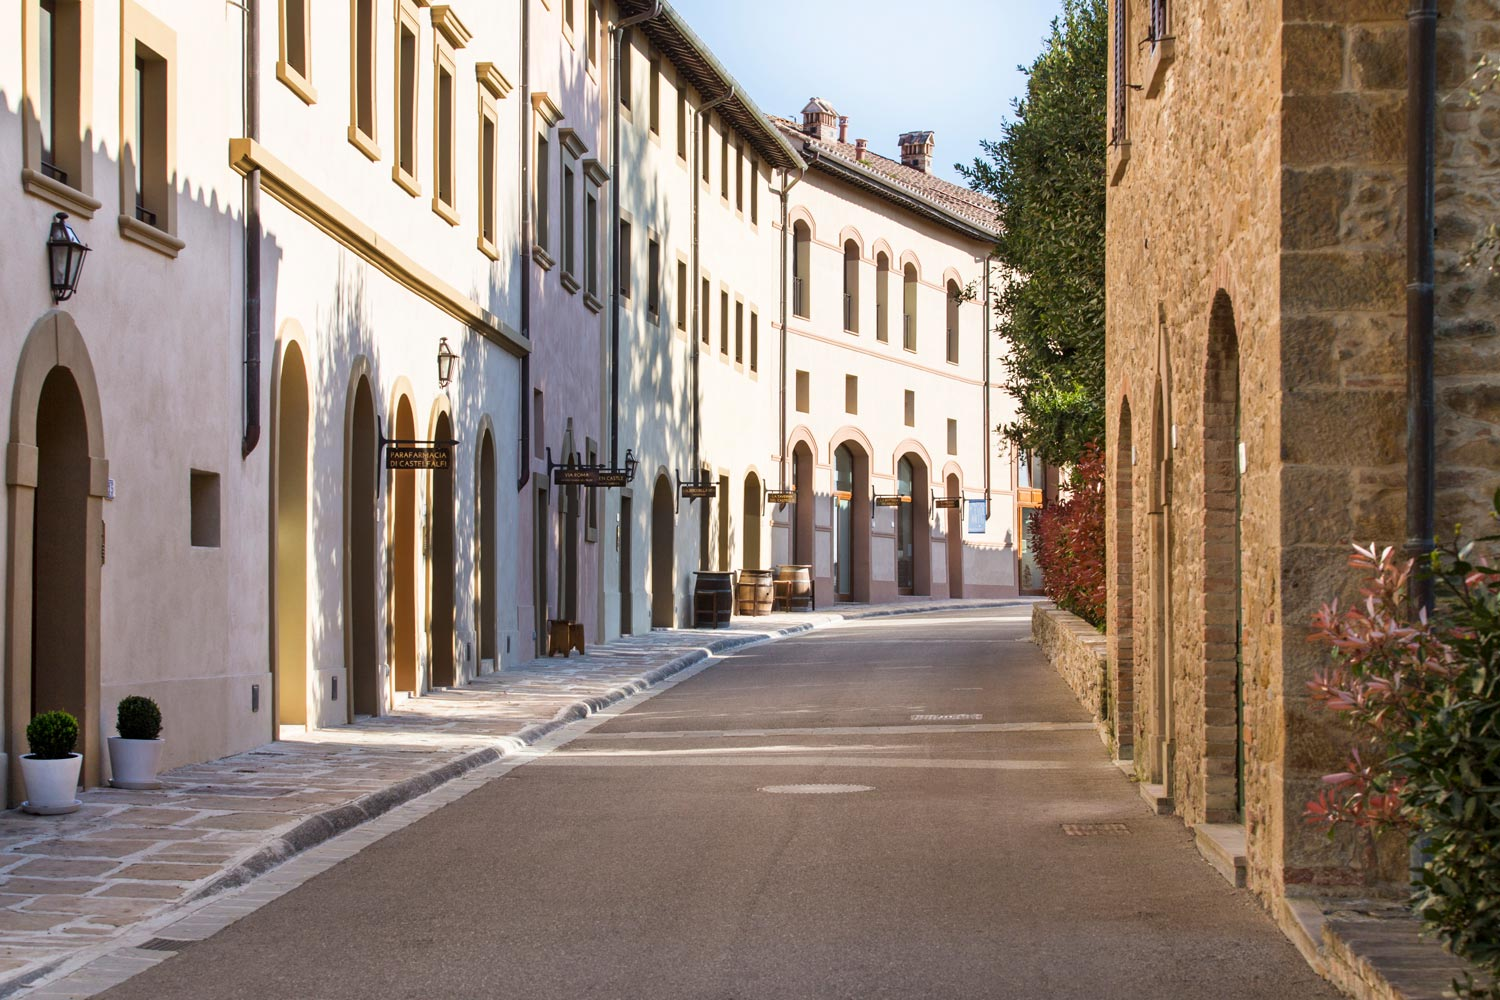 The beautiful central street of the medieval borgo in Castelfalfi, Italy